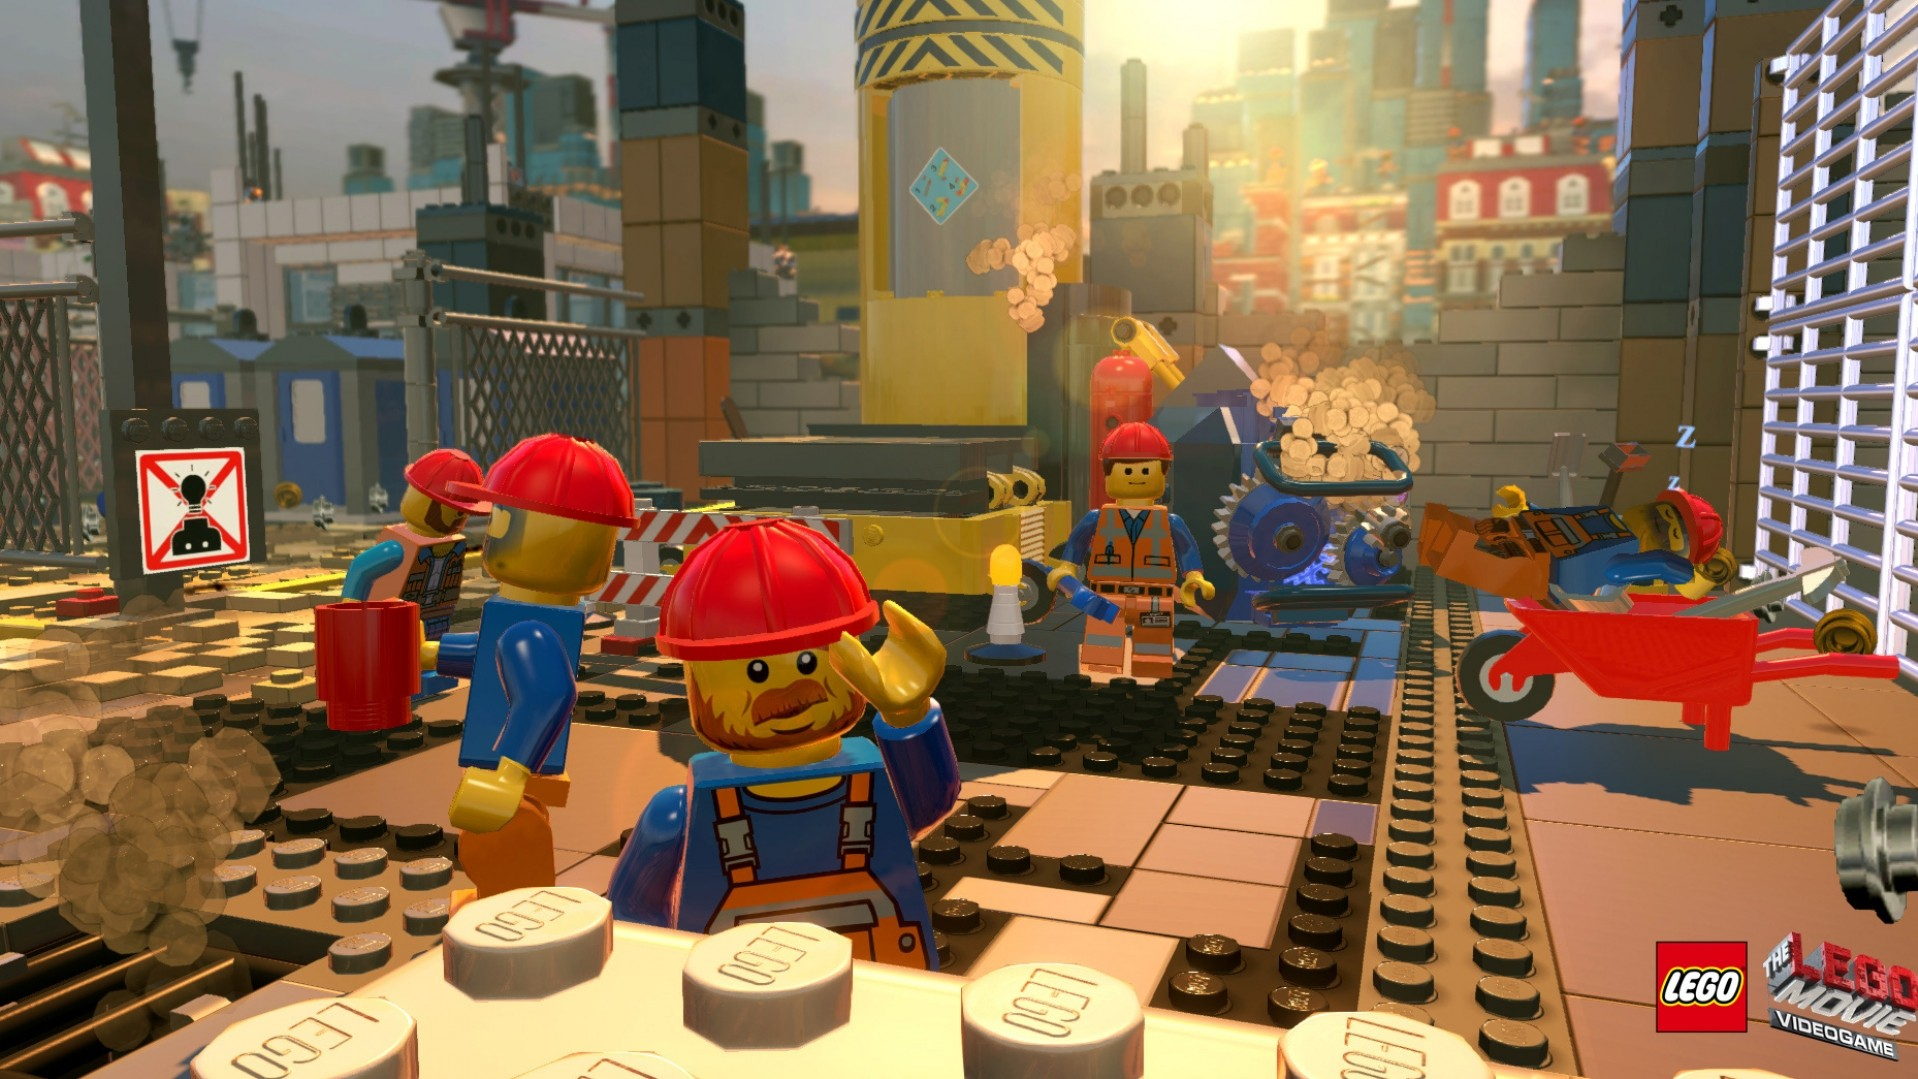 When Will Lego Video Games Be Worthy of Their Name?